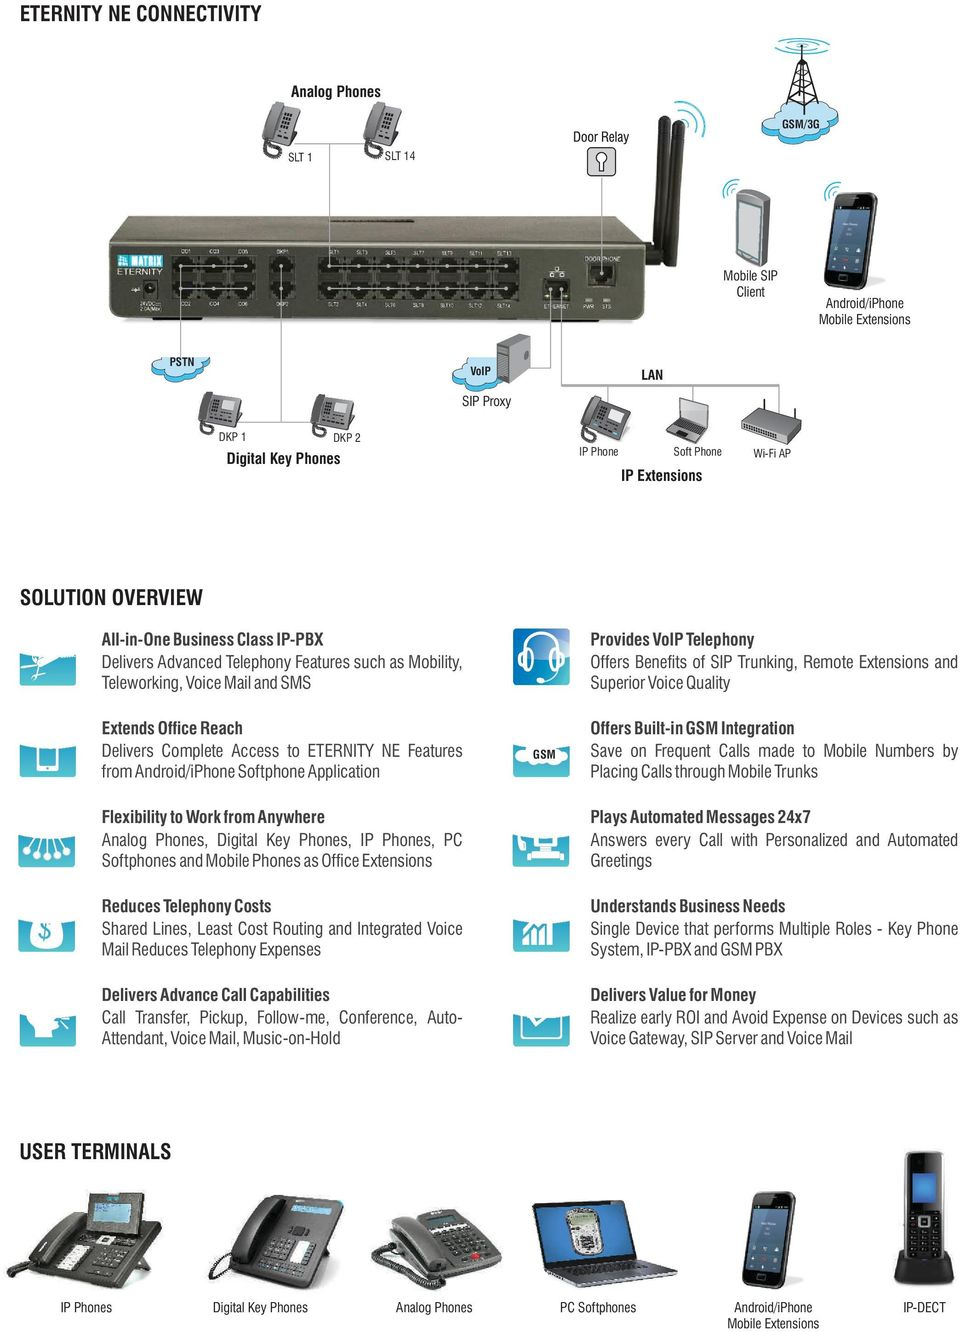 Trunking, Remote Extensions and Superior Voice Quality Extends Office Reach Delivers Complete Access to ETERNITY NE Features from Android/iPhone Softphone Application GSM Offers Built-in GSM